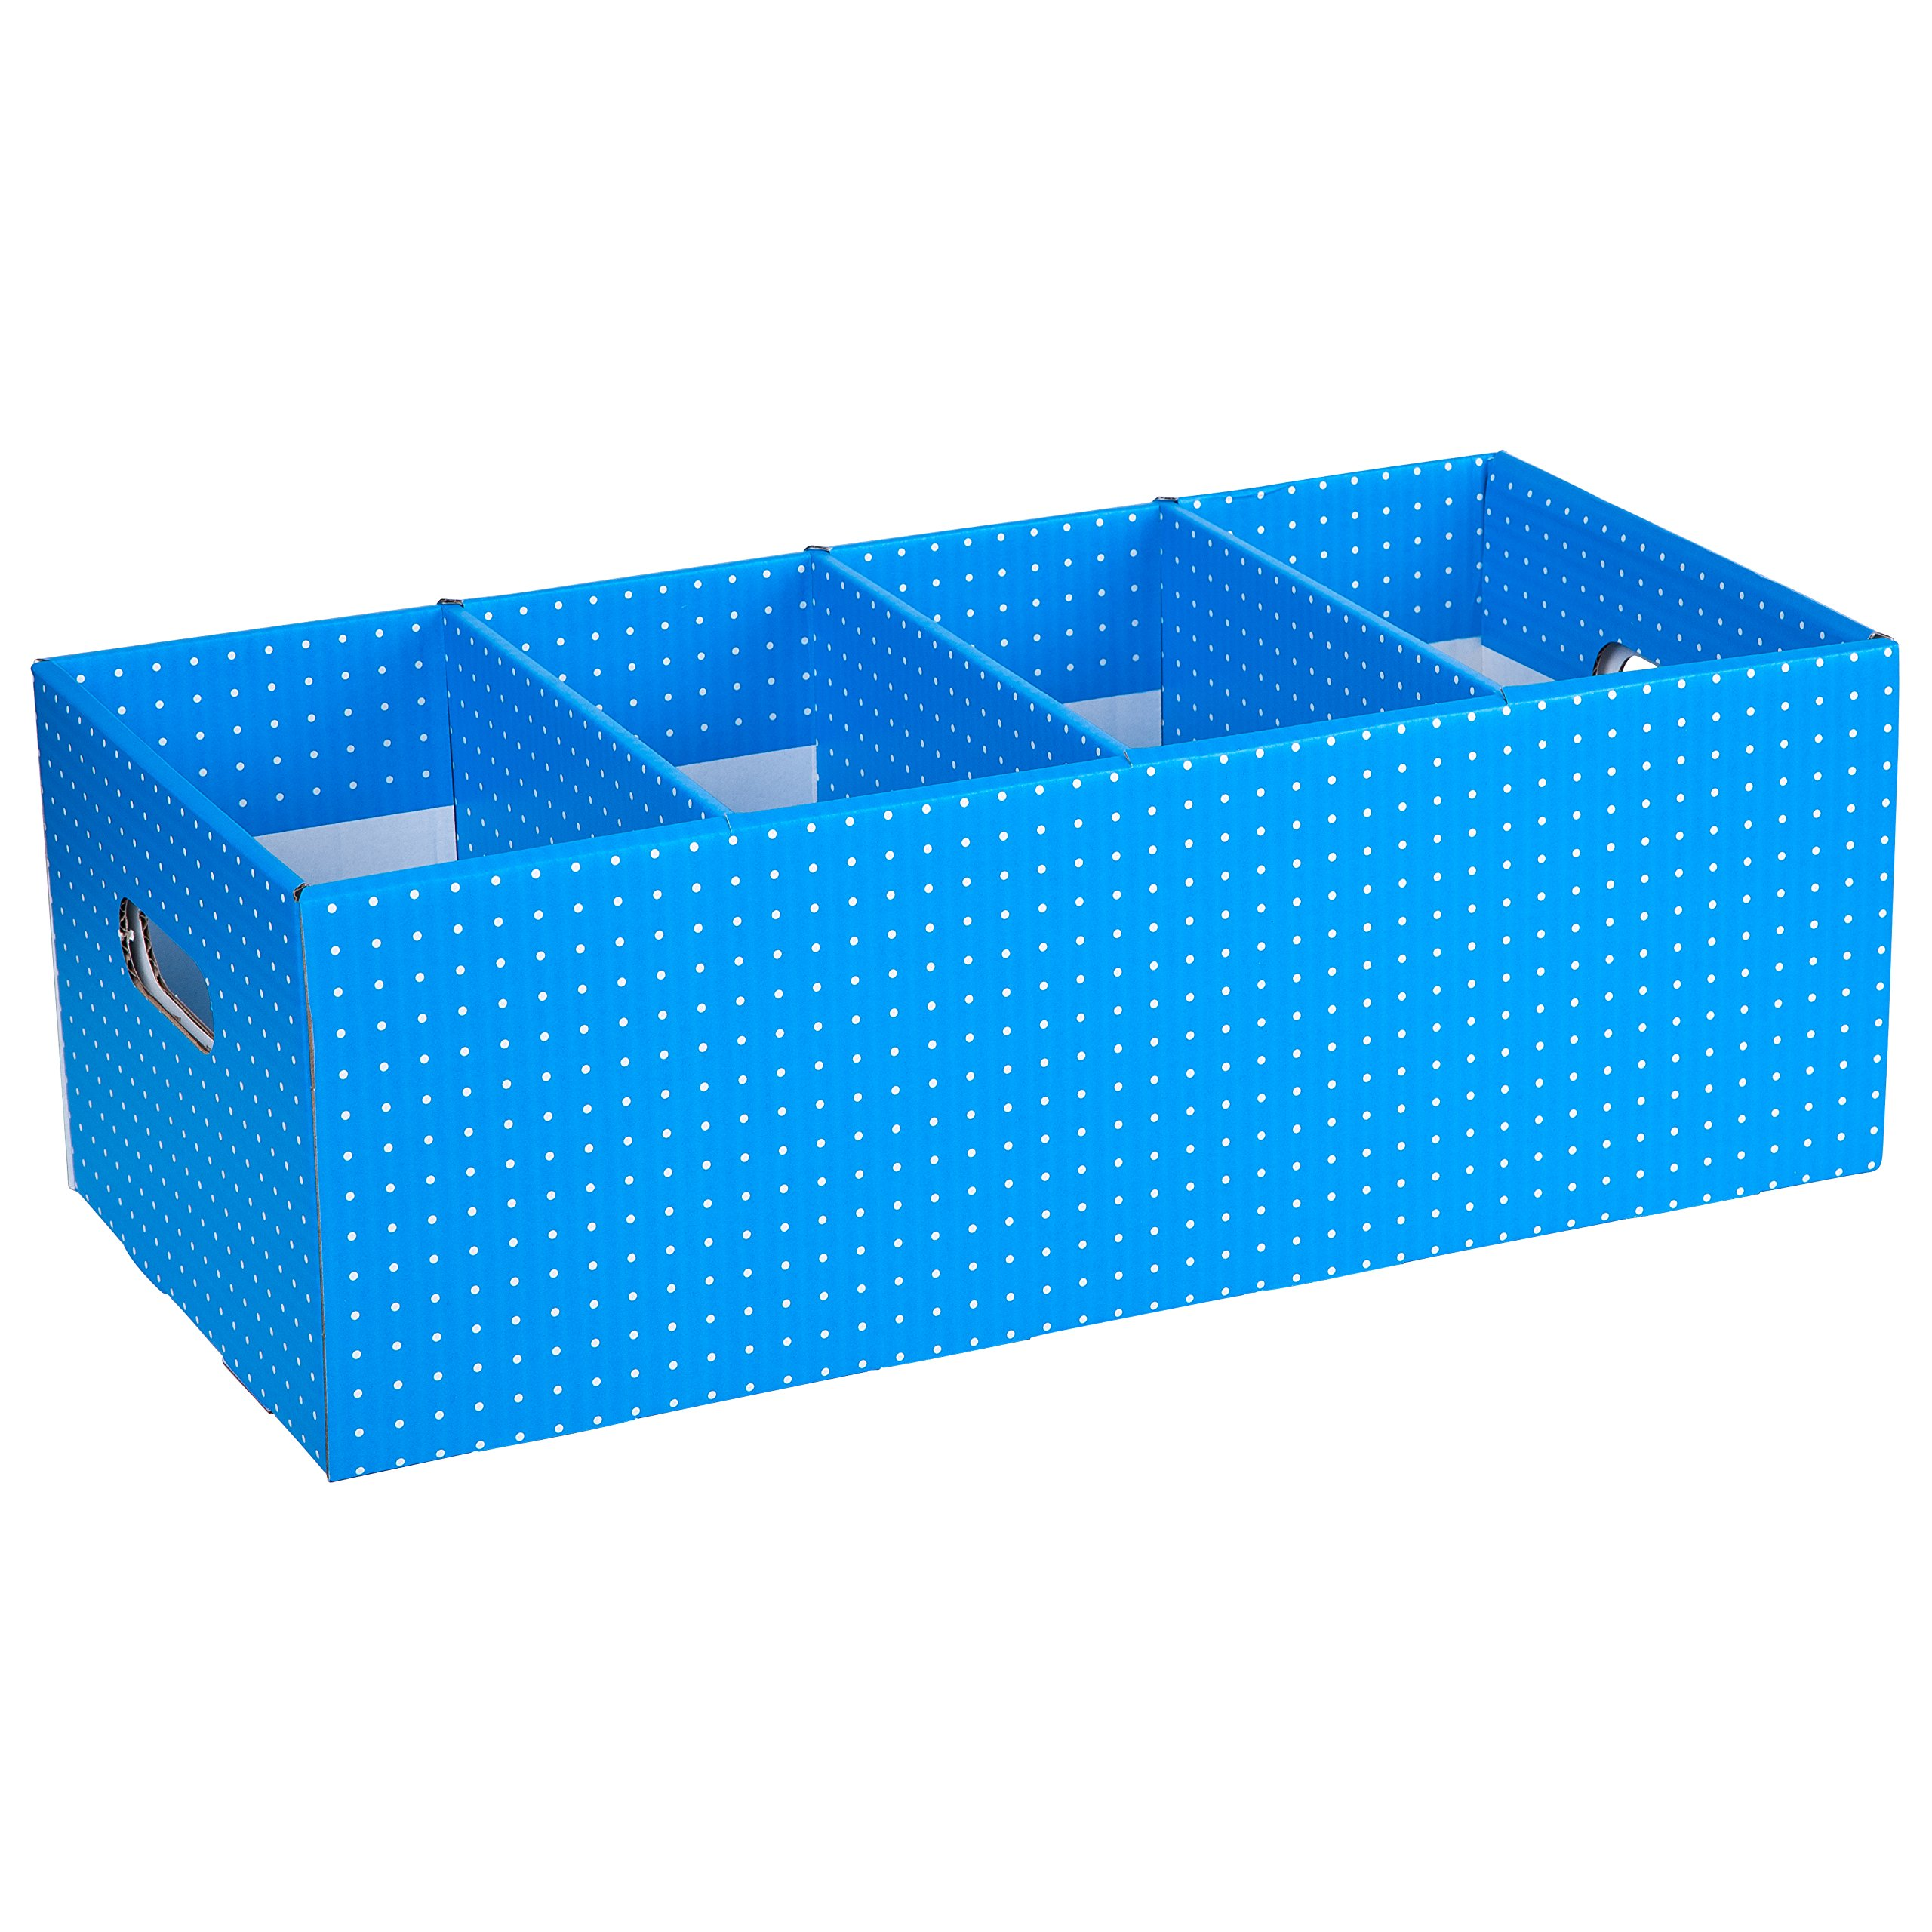 Tote Box Vibrant Spotty Colors, Strong Book Storage,Theme and Display Box. 7.25'' x 10.5'' x 21.5'', Blue (CITBB019962243325)